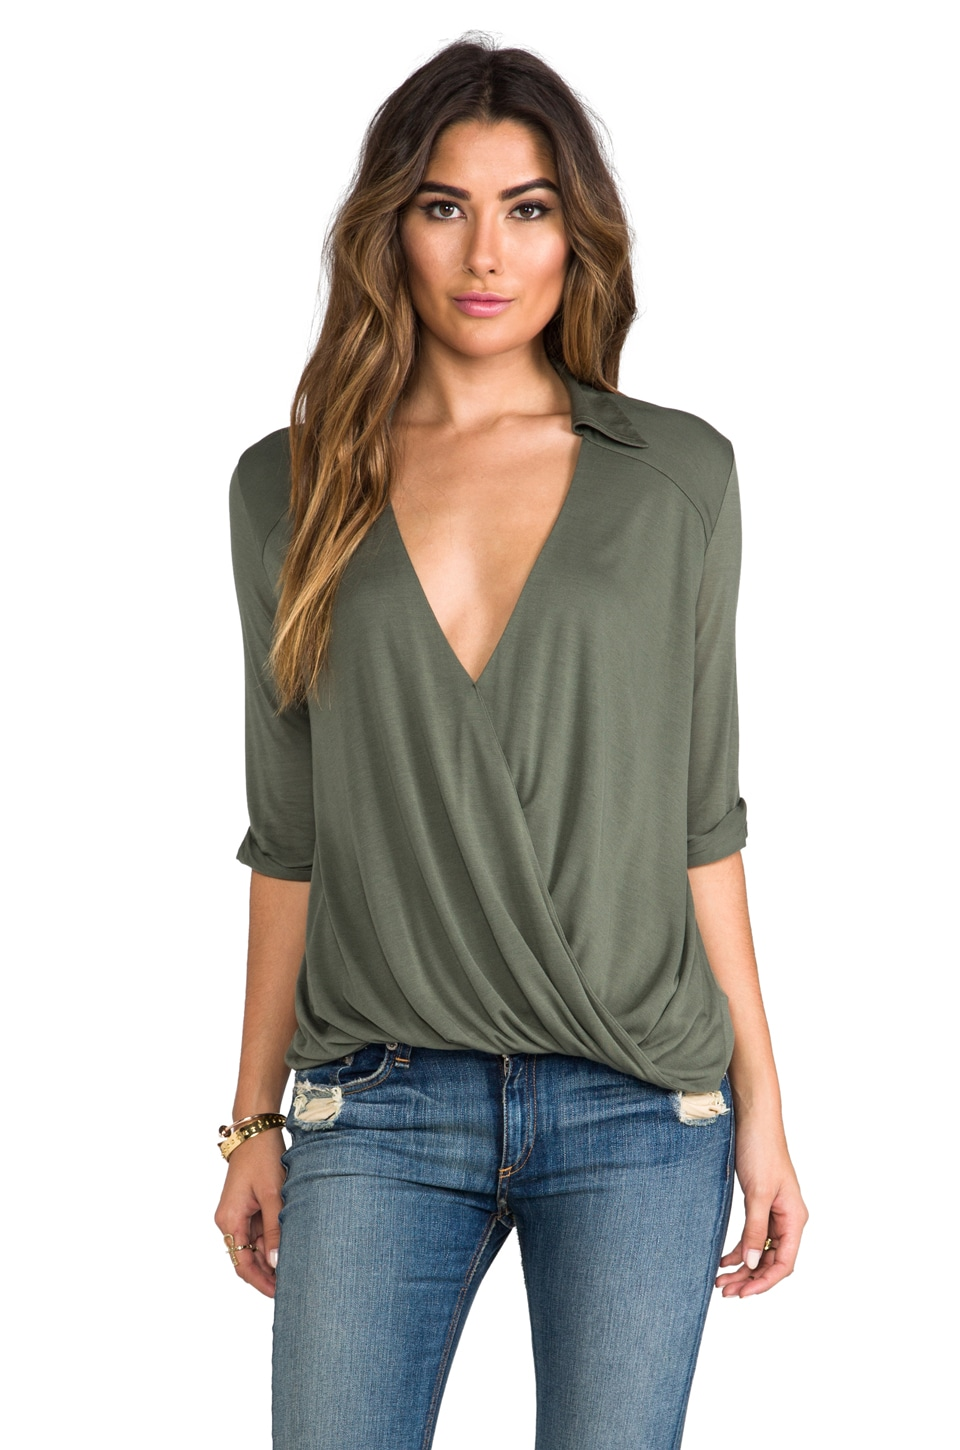 Blue Life Collared Hayley Top in Military Green